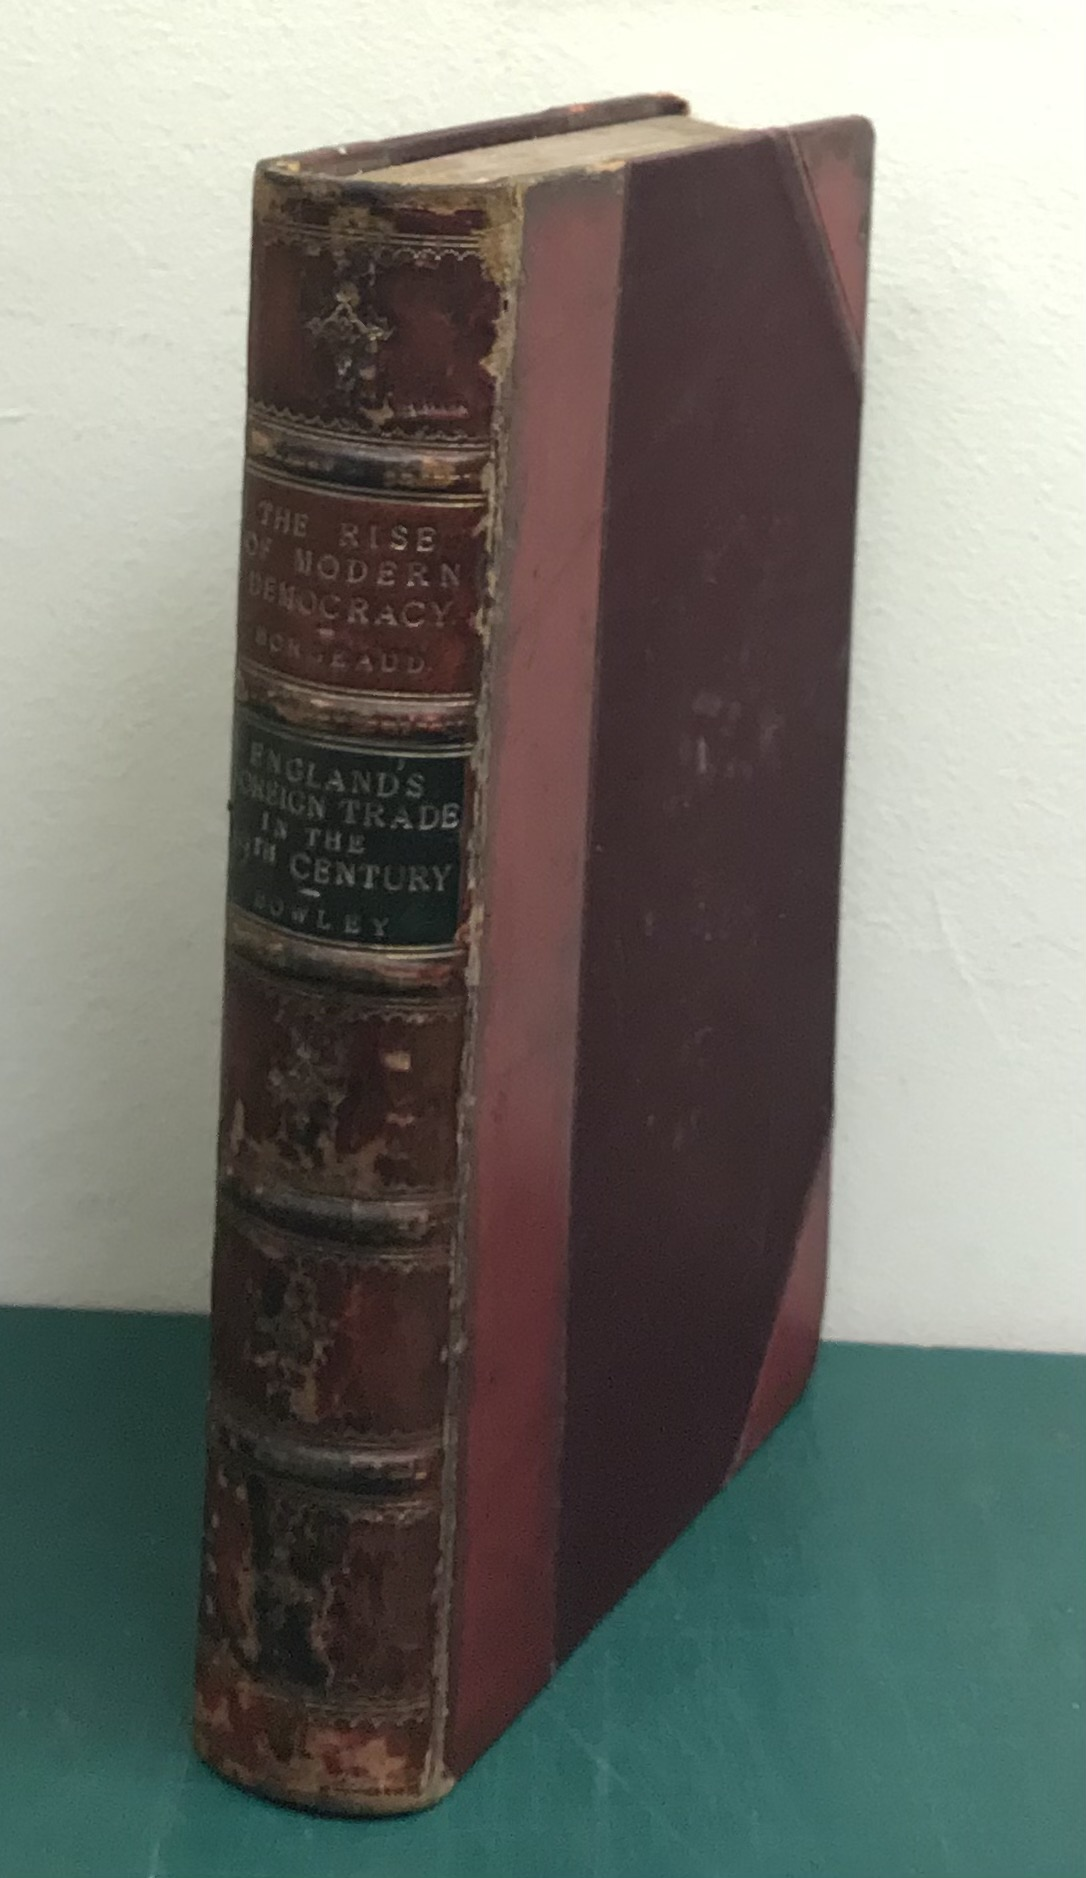 The Rise of Modern Democracy in Old and New England &  A Short Account of England's Foreign Trade in the Nineteenth Century